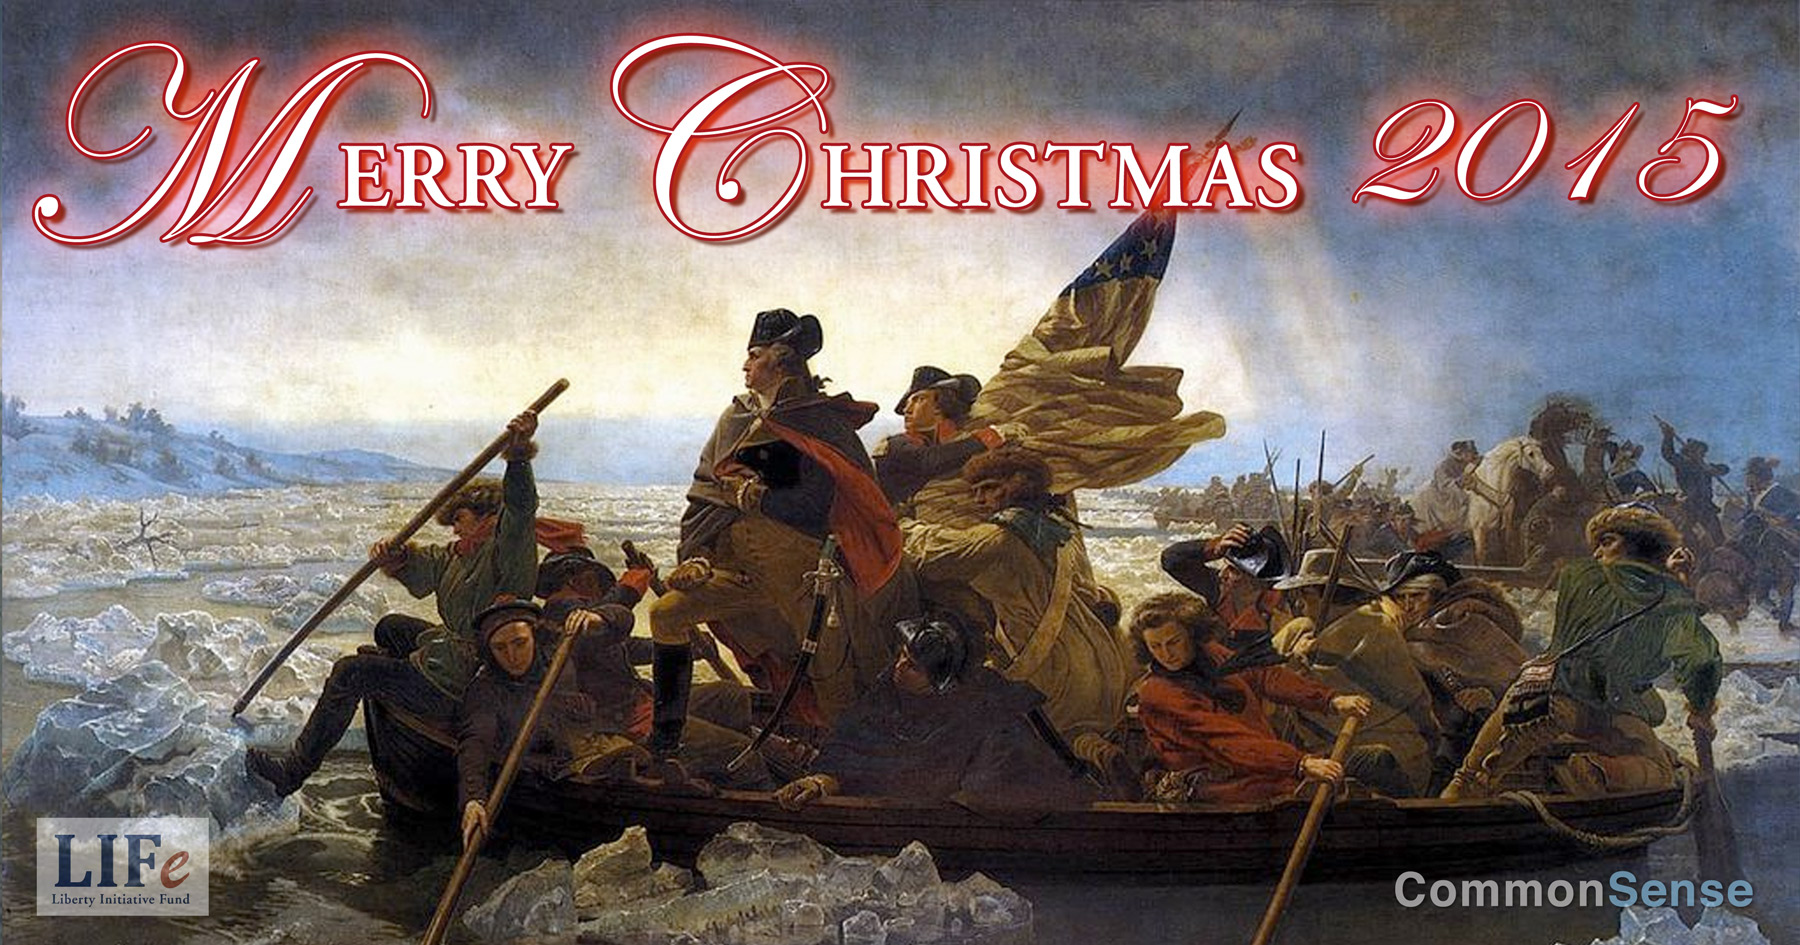 merry christmas america common sense paul jacob christmas 2015 george washington common sense